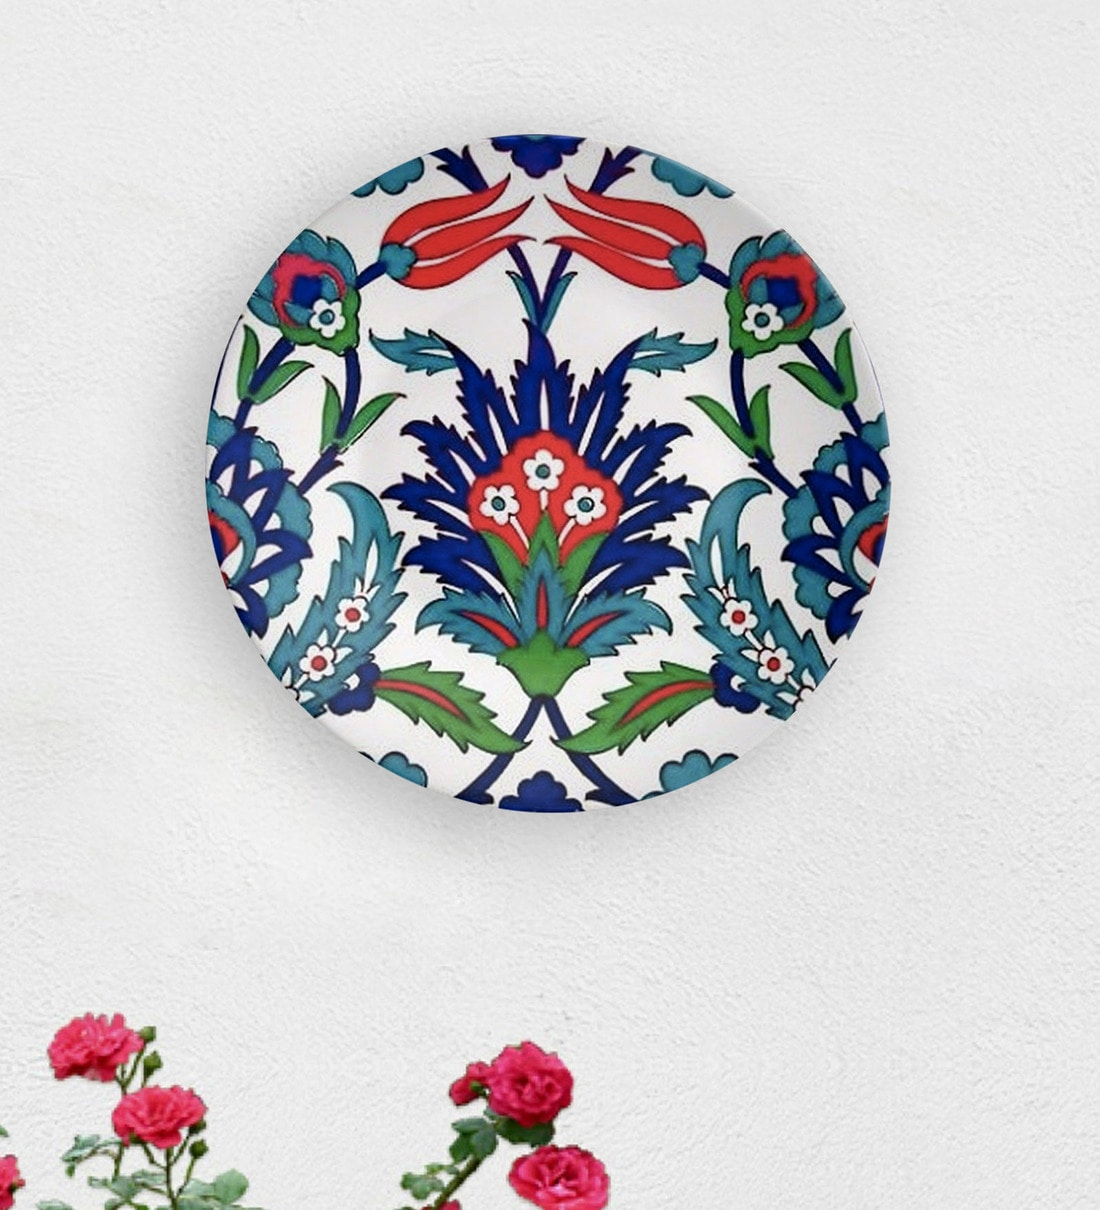 Buy Multicolour Ceramic Turkish Flower Within Decorative Wall Plate By Quirk India Online Wall Plates Wall Art Home Decor Pepperfry Product